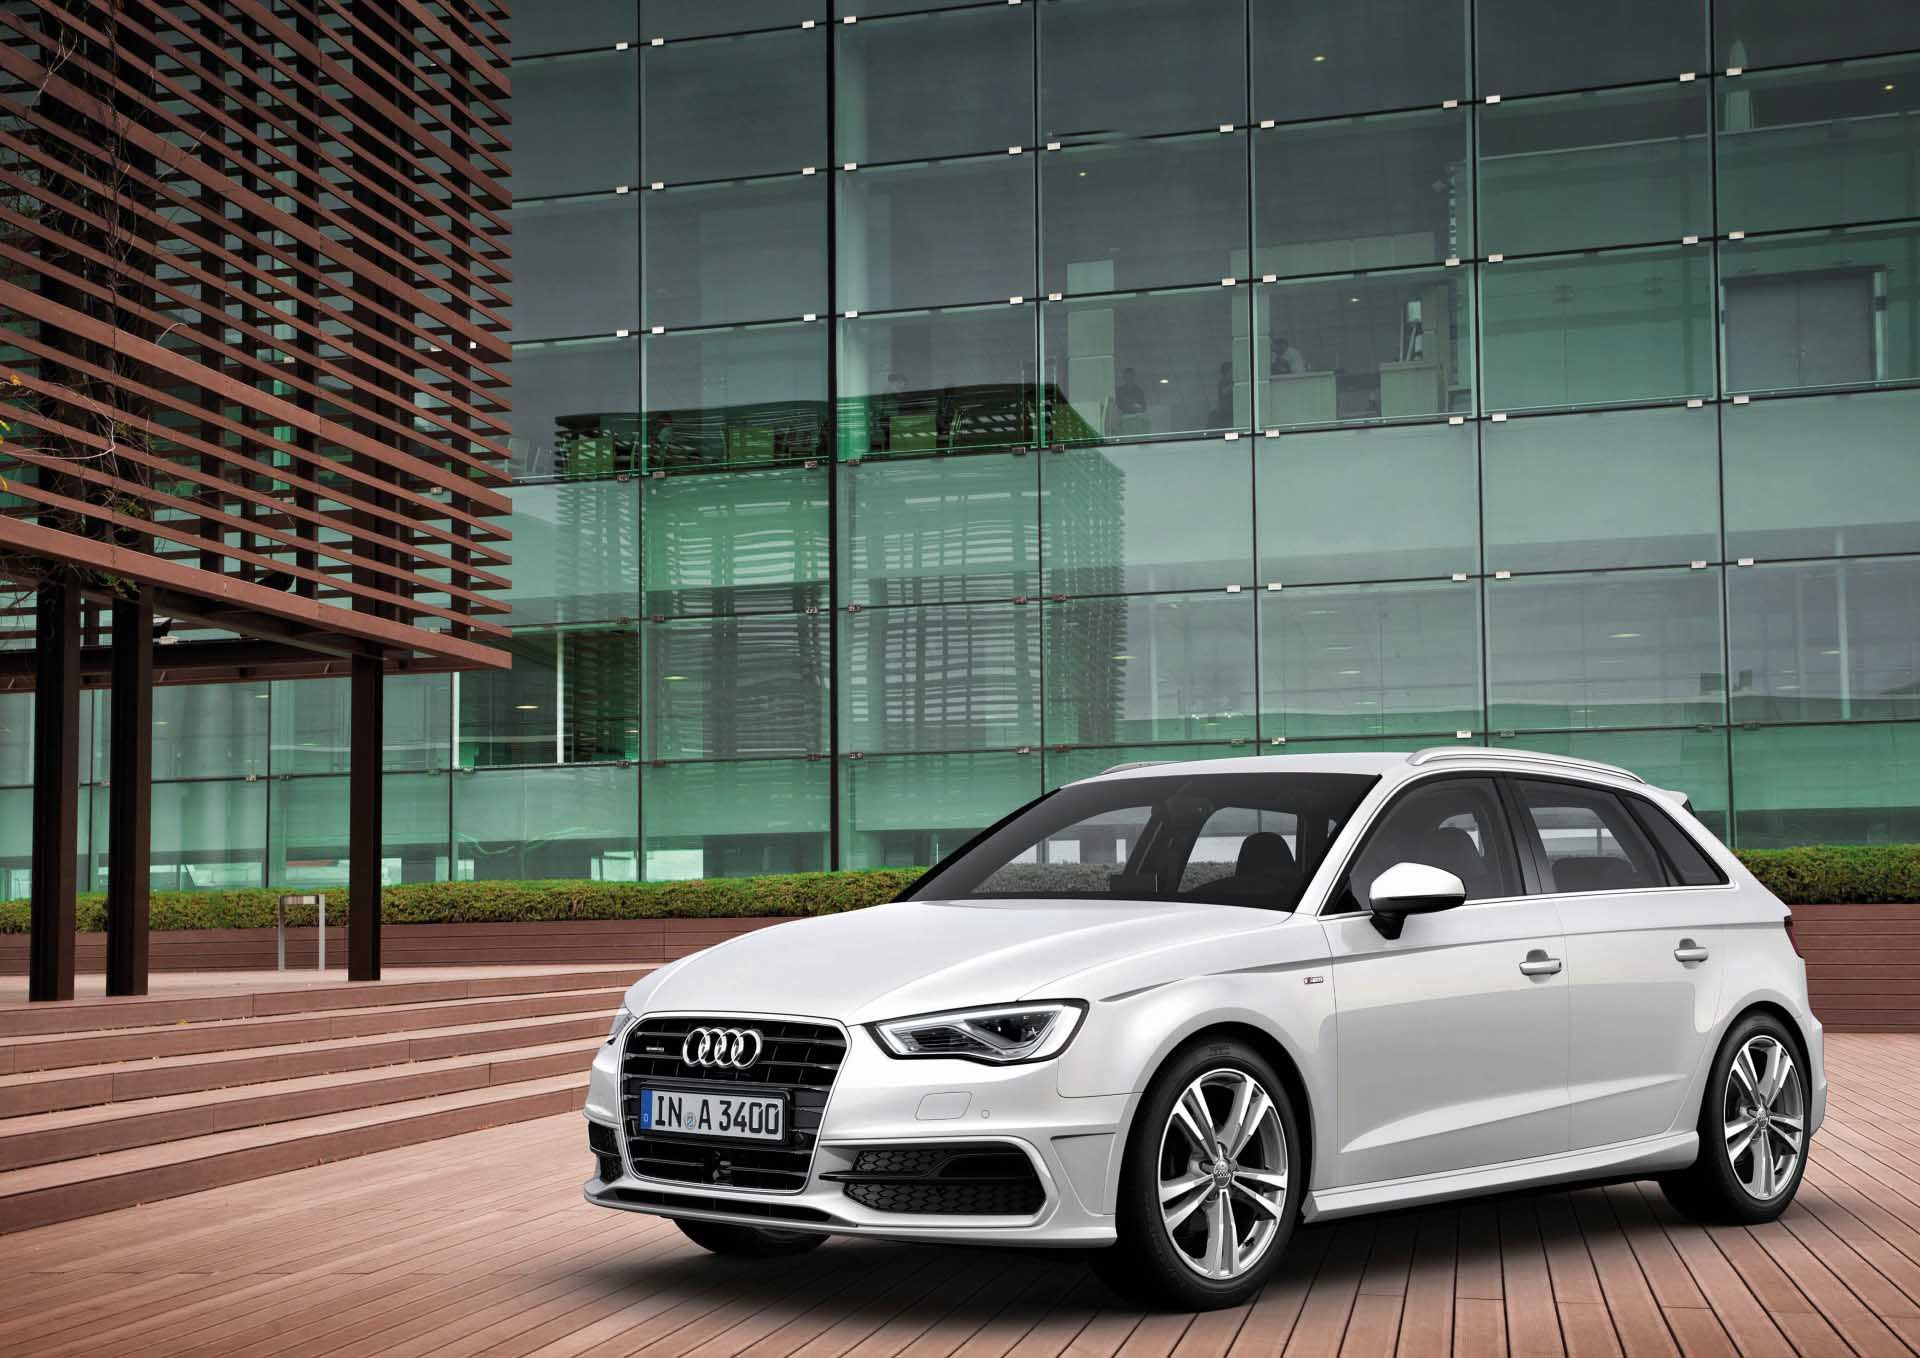 10 Awesome Audi A3 Sportback Review Full HD Wallpapers